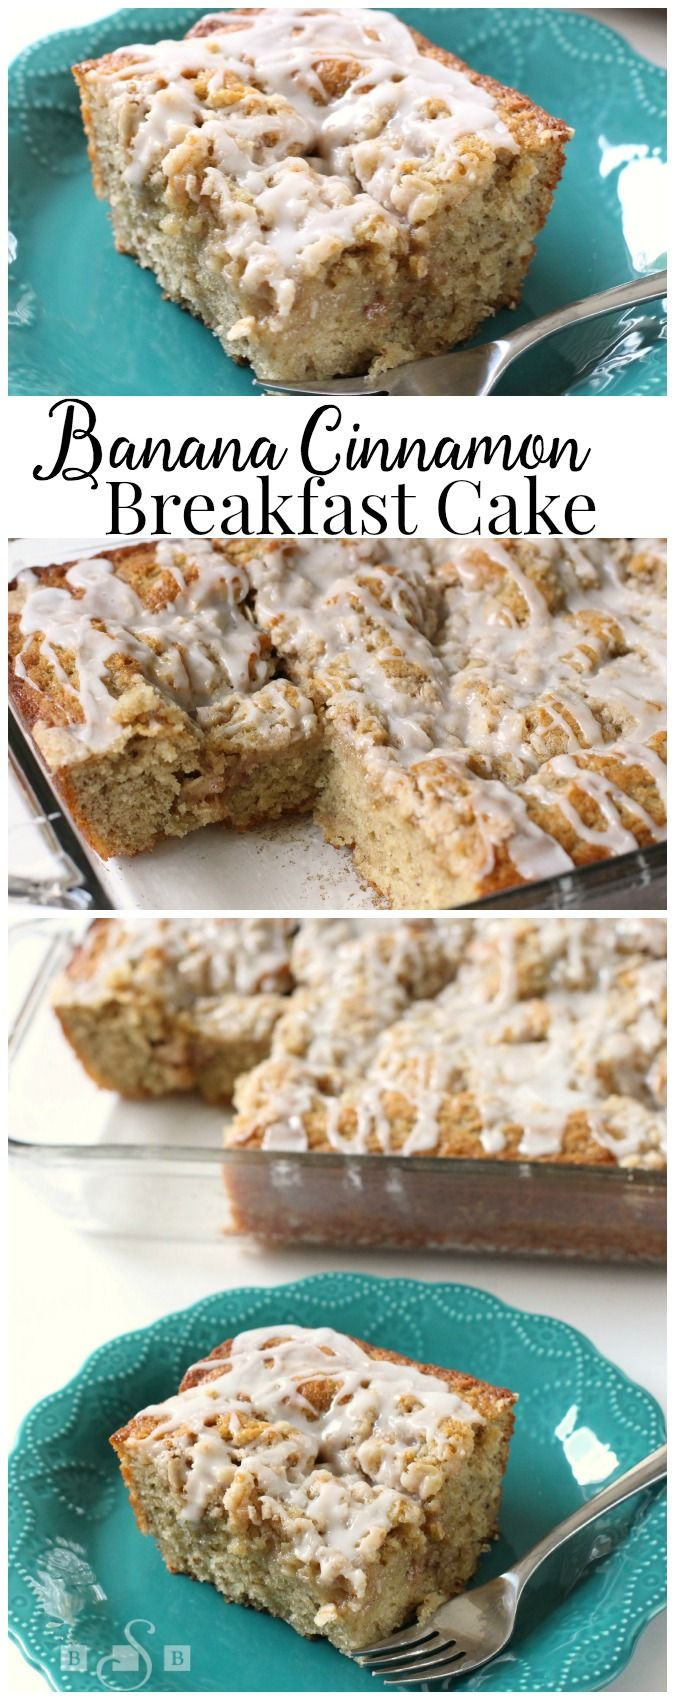 BANANA CINNAMON BREAKFAST CAKE